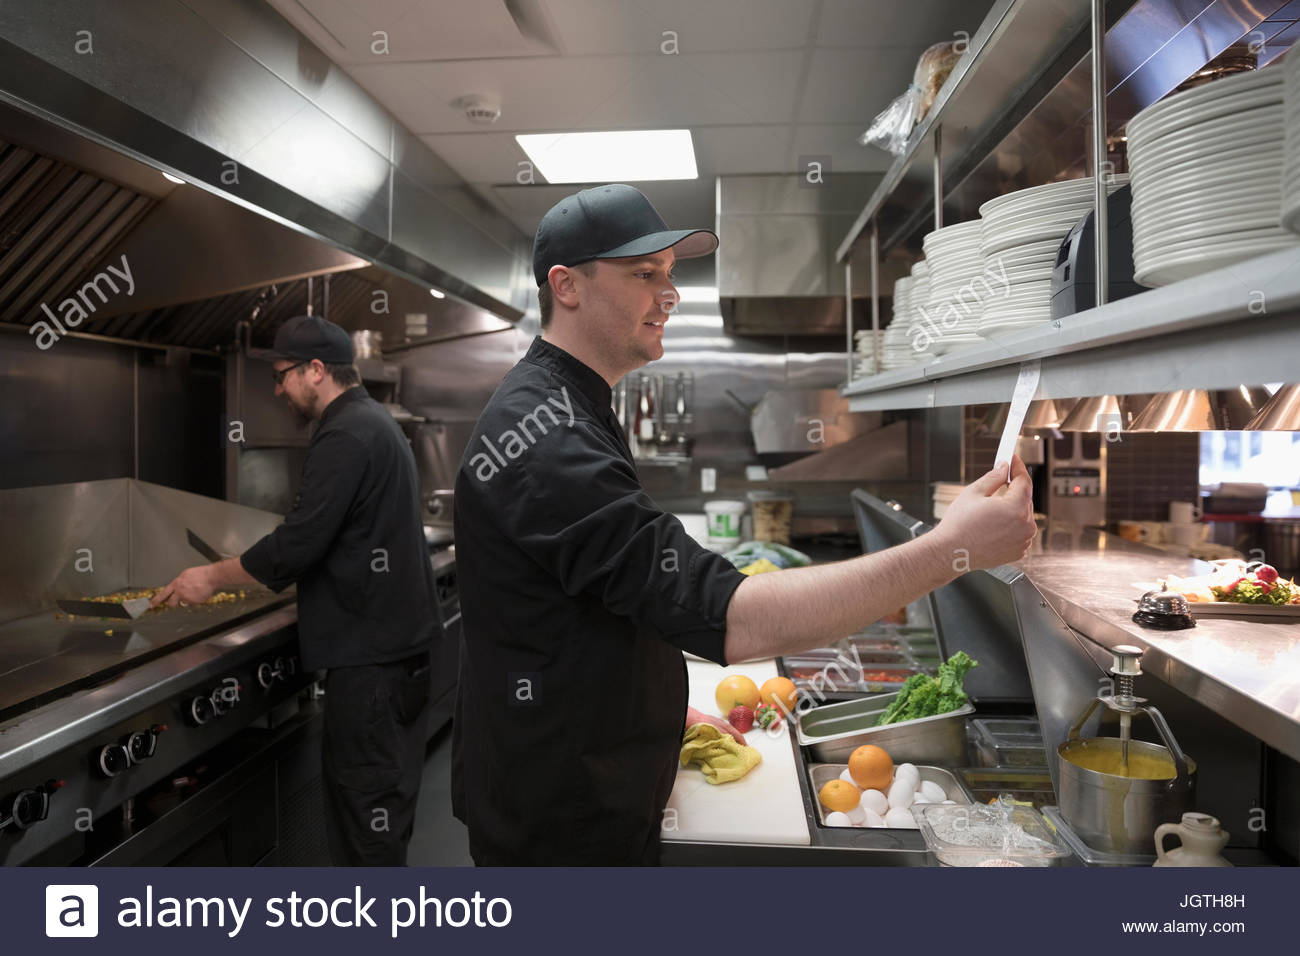 Line cooks preparing food in restaurant kitchen - Stock Image